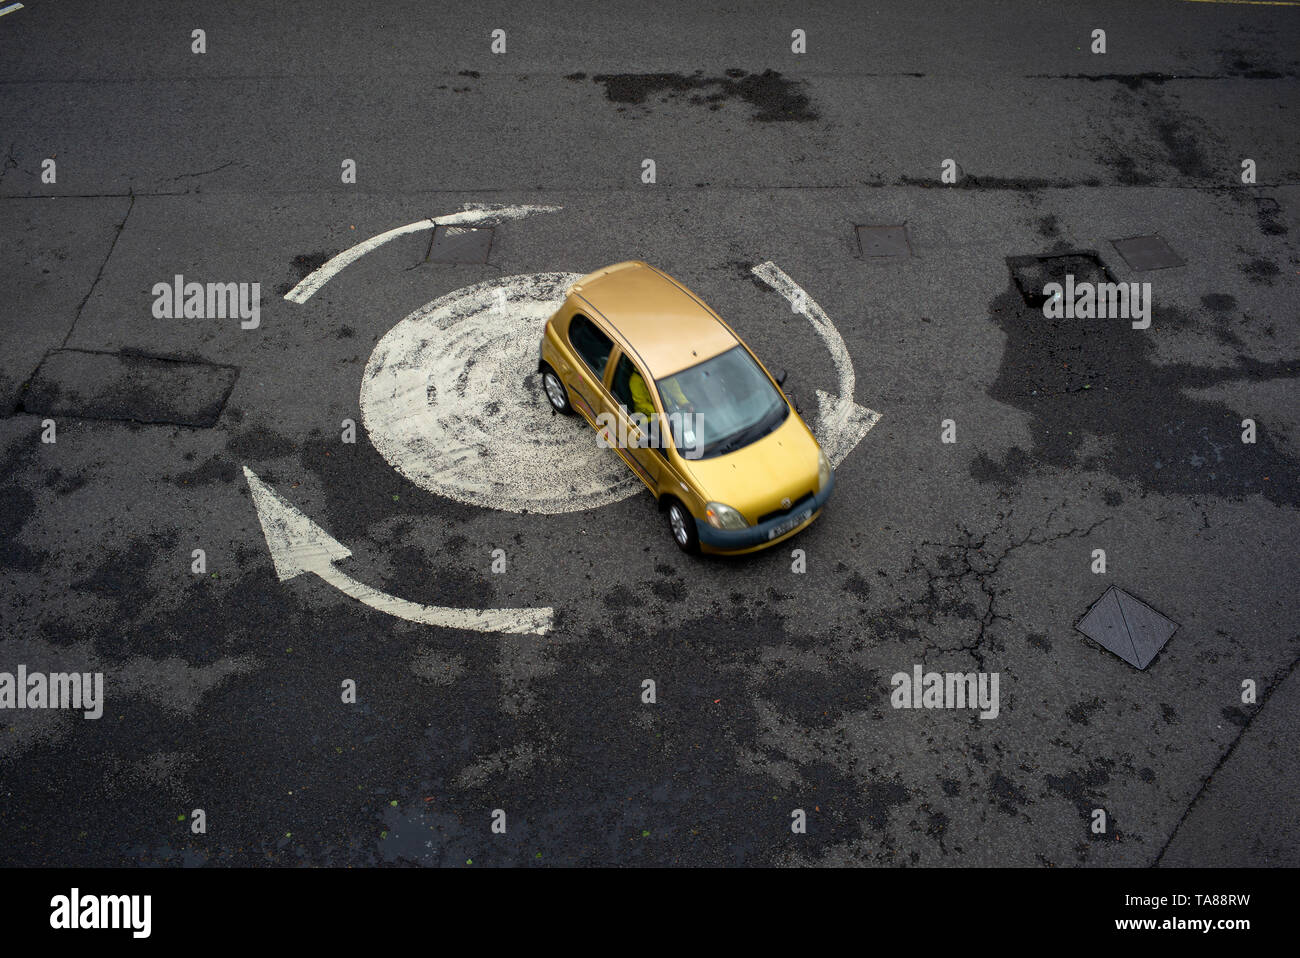 Aerial view of a painted arrowed roundabout with a single car going around. Could be used as an analogy or concept as being lost or going in circles. Stock Photo